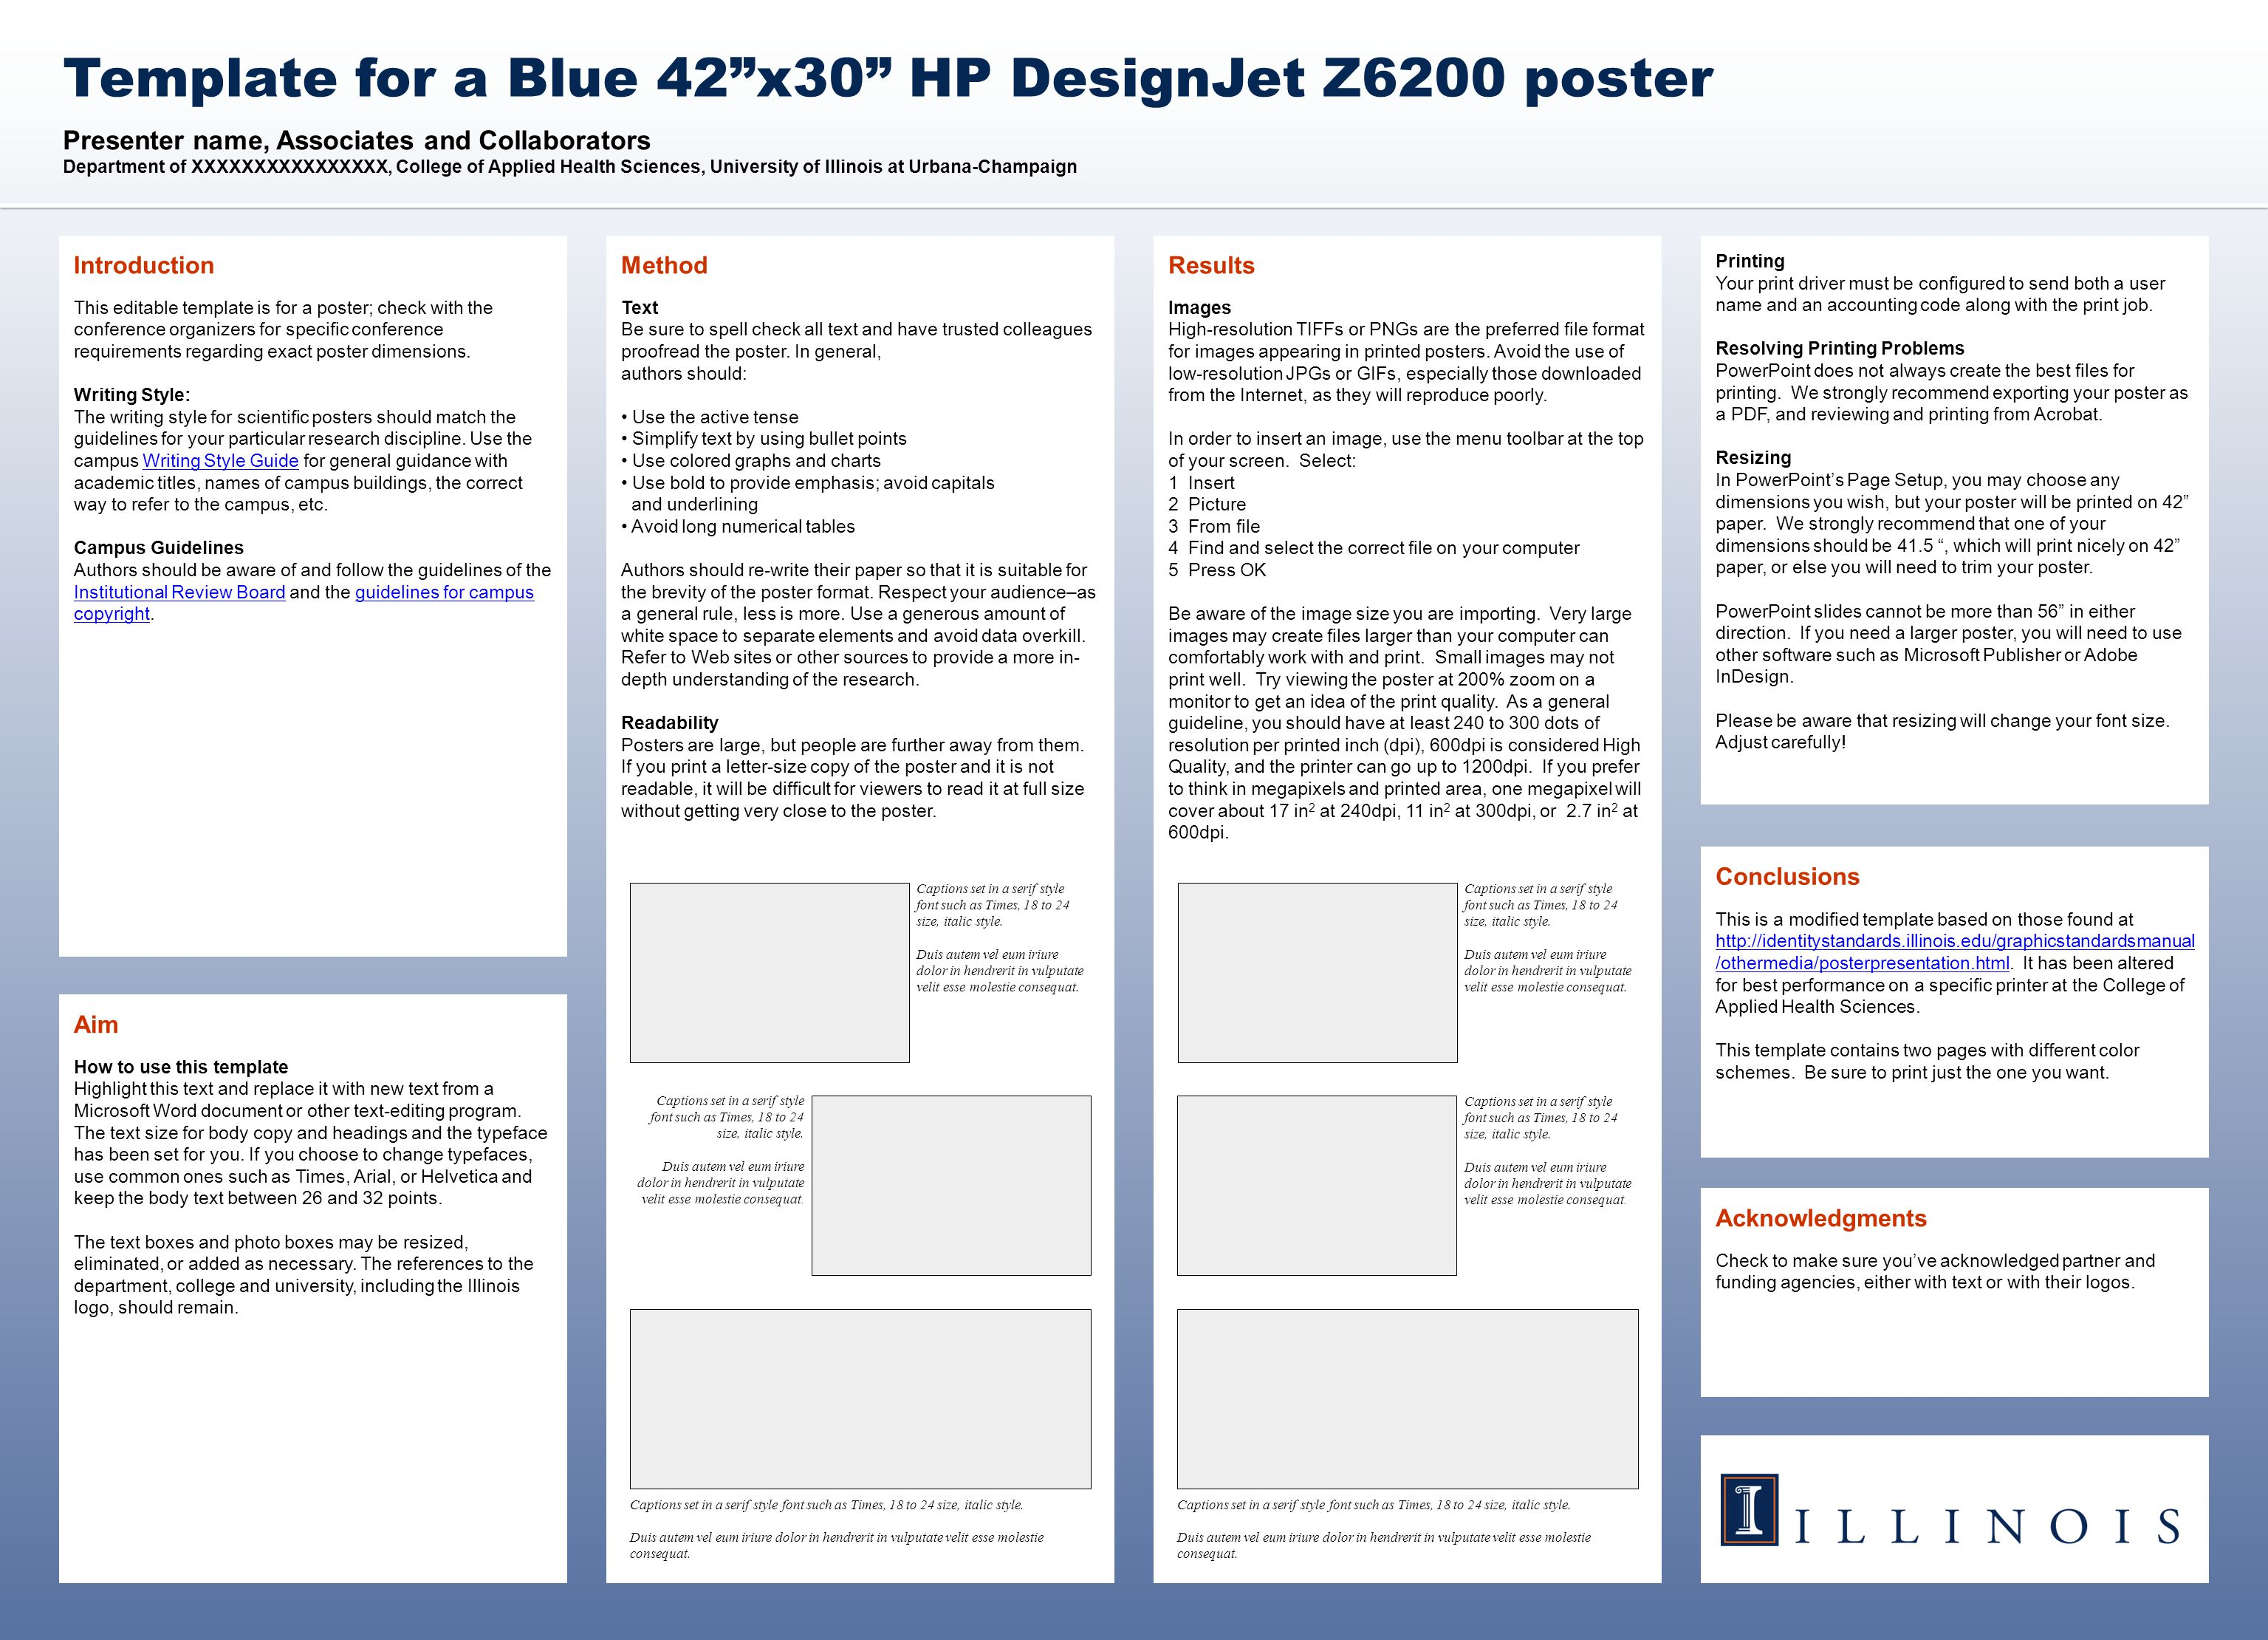 Presenter name, Associates and Collaborators Department of XXXXXXXXXXXXXXXX, College of Applied Health Sciences, University of Illinois at Urbana-Champaign Template for a Blue 42 x30 HP DesignJet Z6200 poster Acknowledgments Check to make sure you've acknowledged partner and funding agencies, either with text or with their logos.